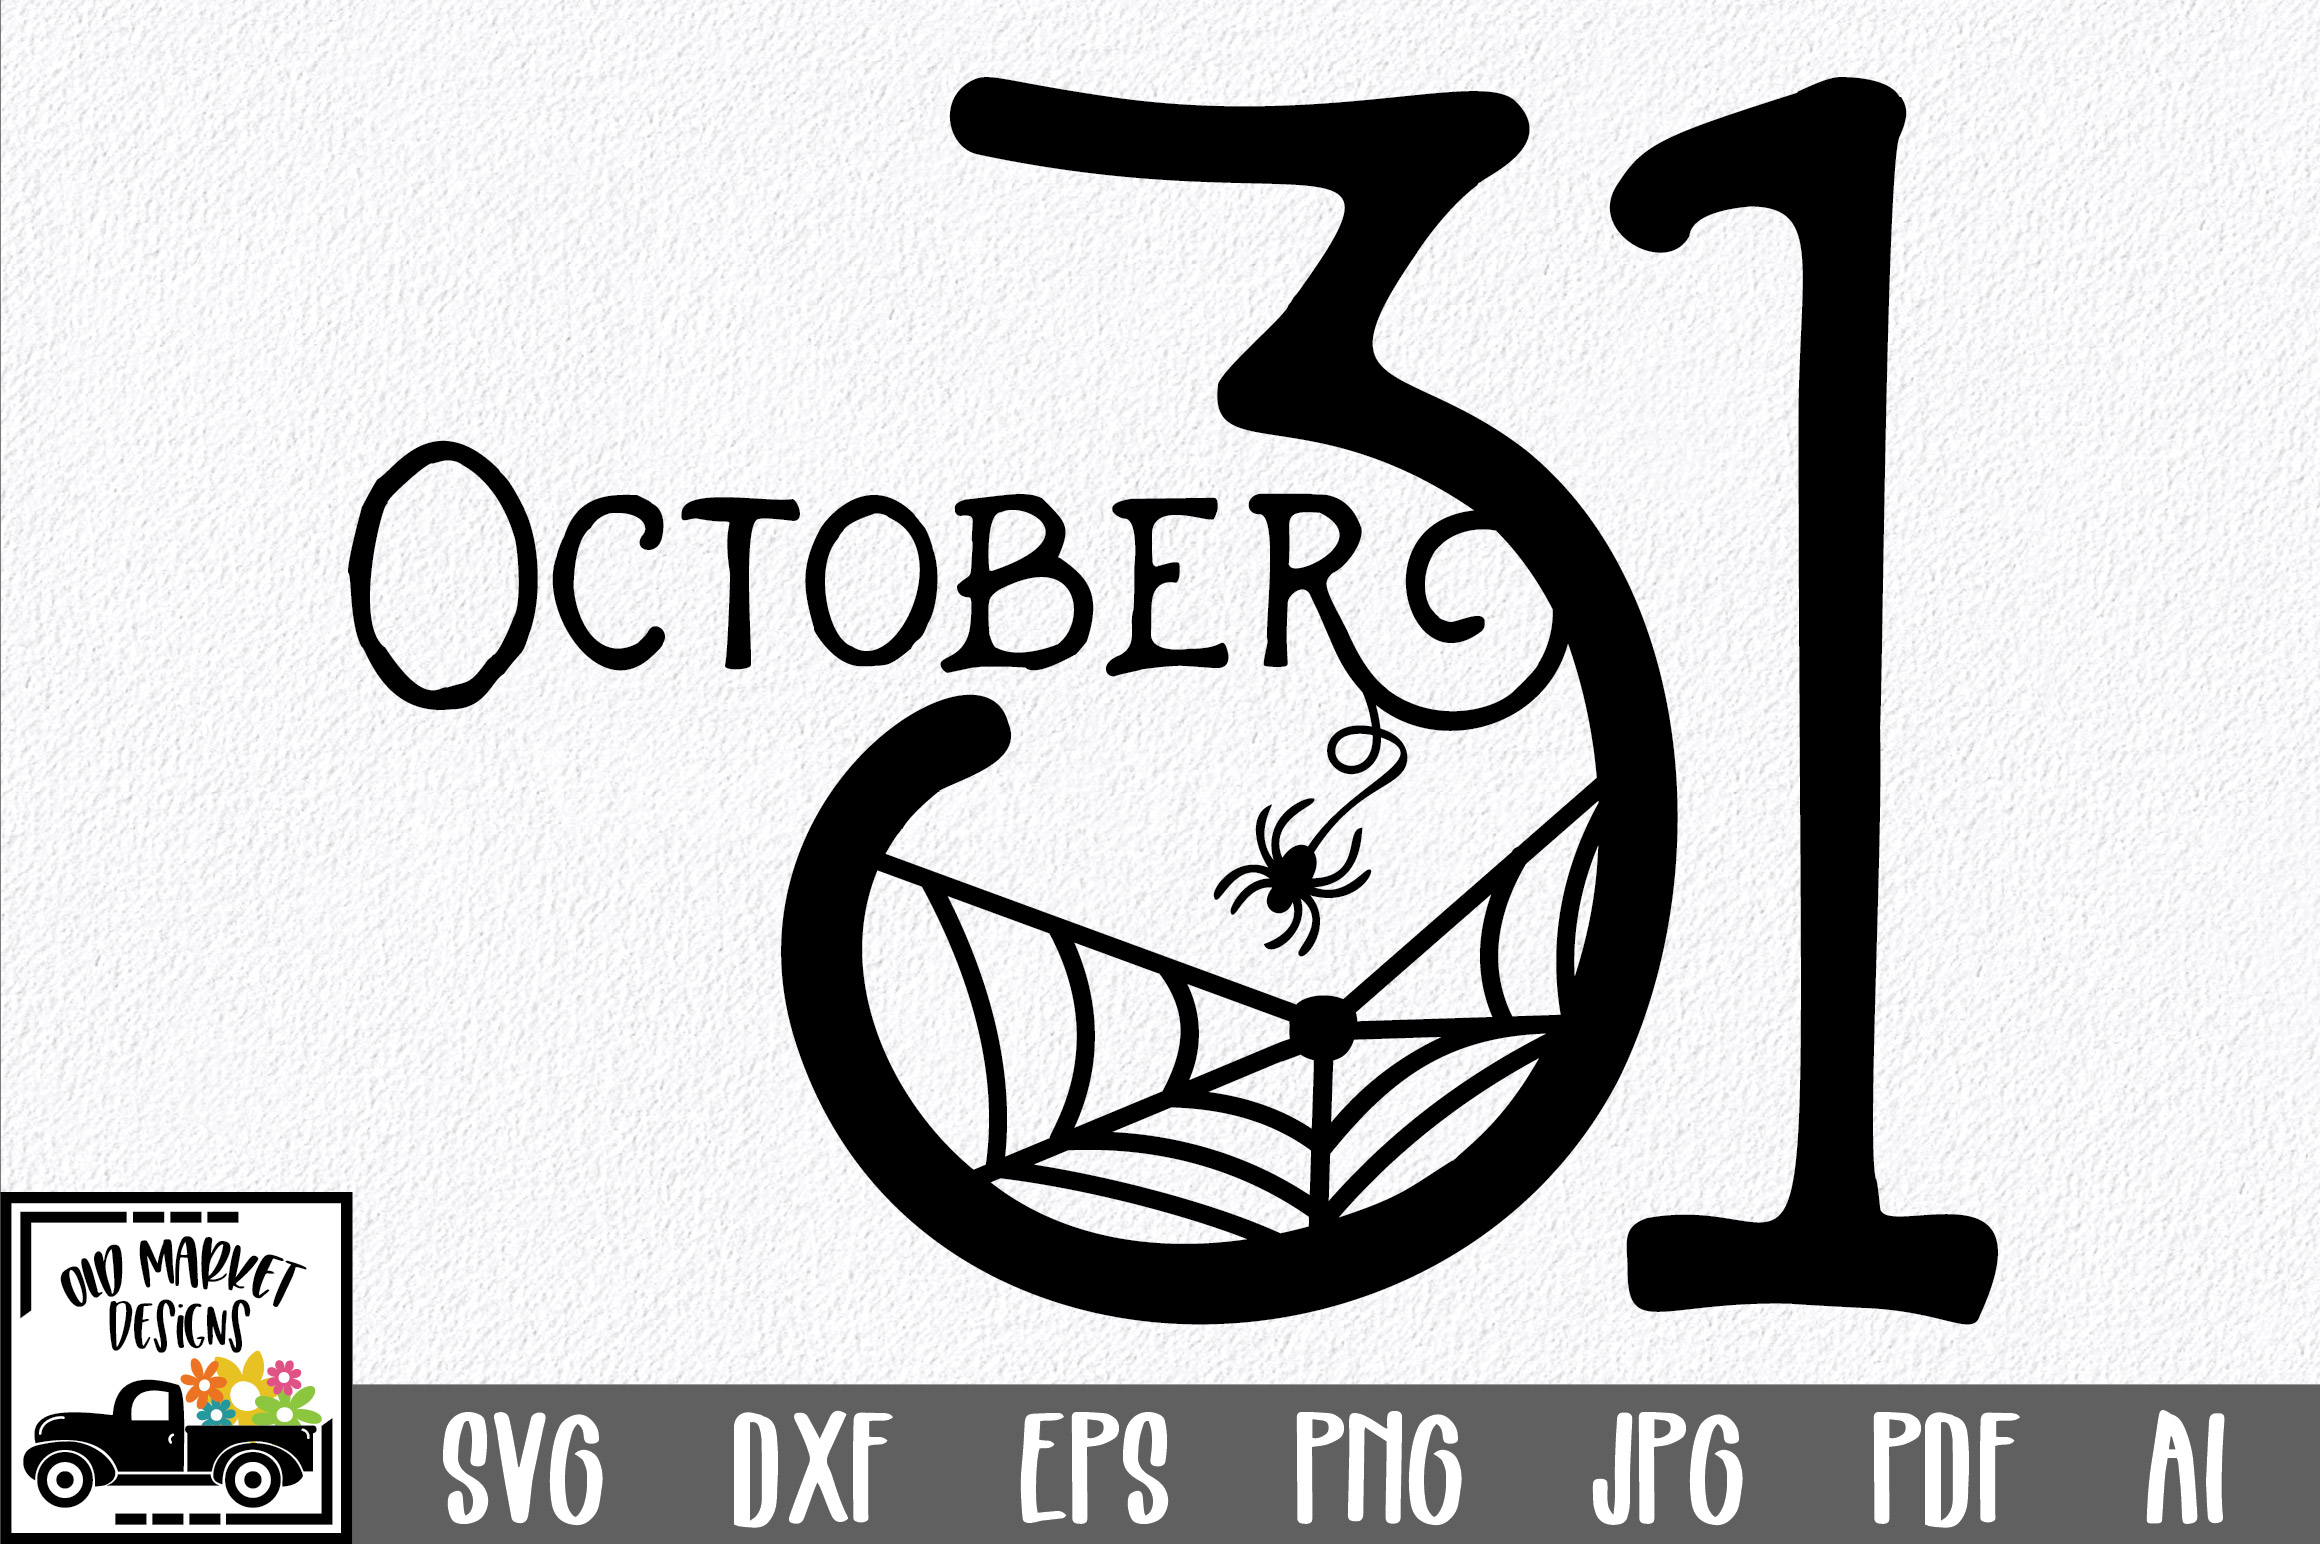 Download Free October 31 Cut File Graphic By Oldmarketdesigns Creative Fabrica for Cricut Explore, Silhouette and other cutting machines.